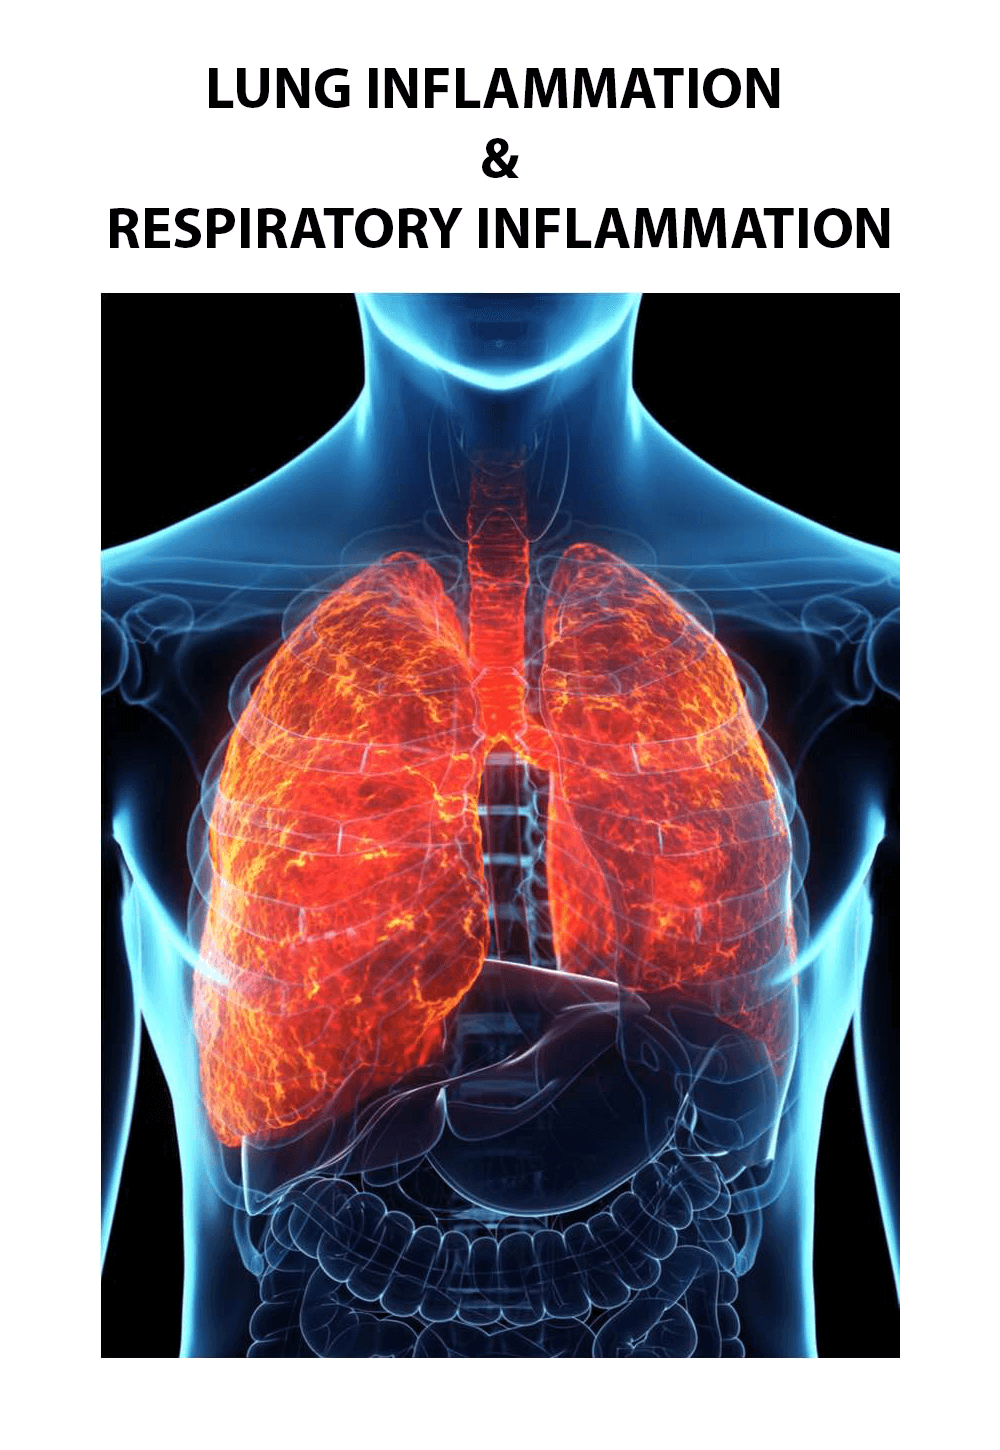 BEE VENOM FOR LUNG INFLAMMATION & RESPIRATORY INFLAMMATION